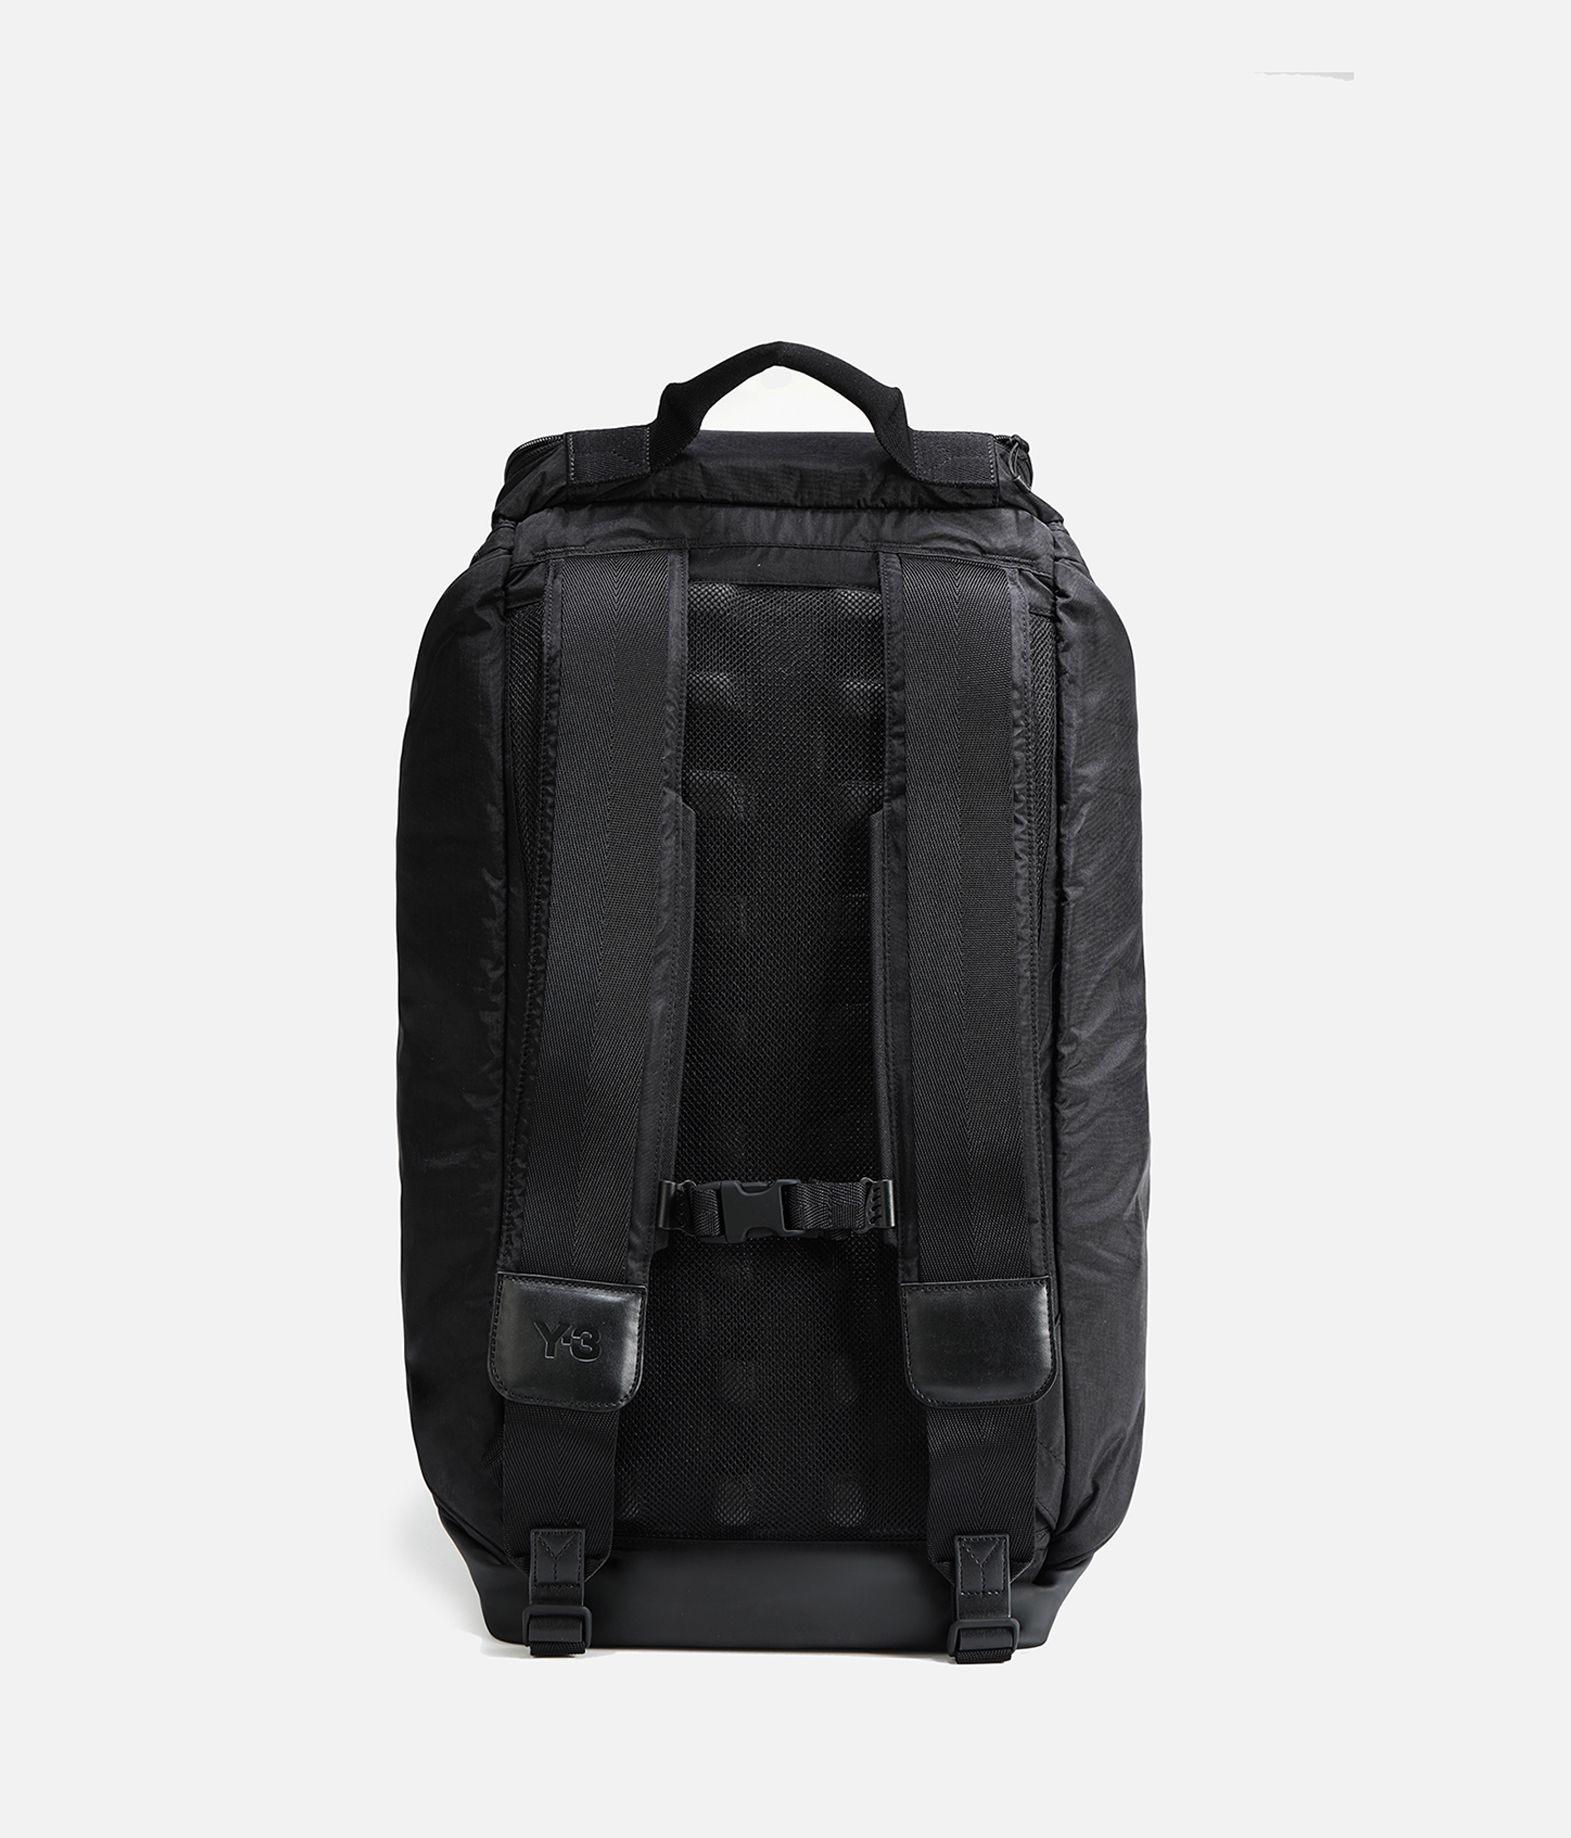 Y-3 Y-3 Travel Backpack リュックサック E e